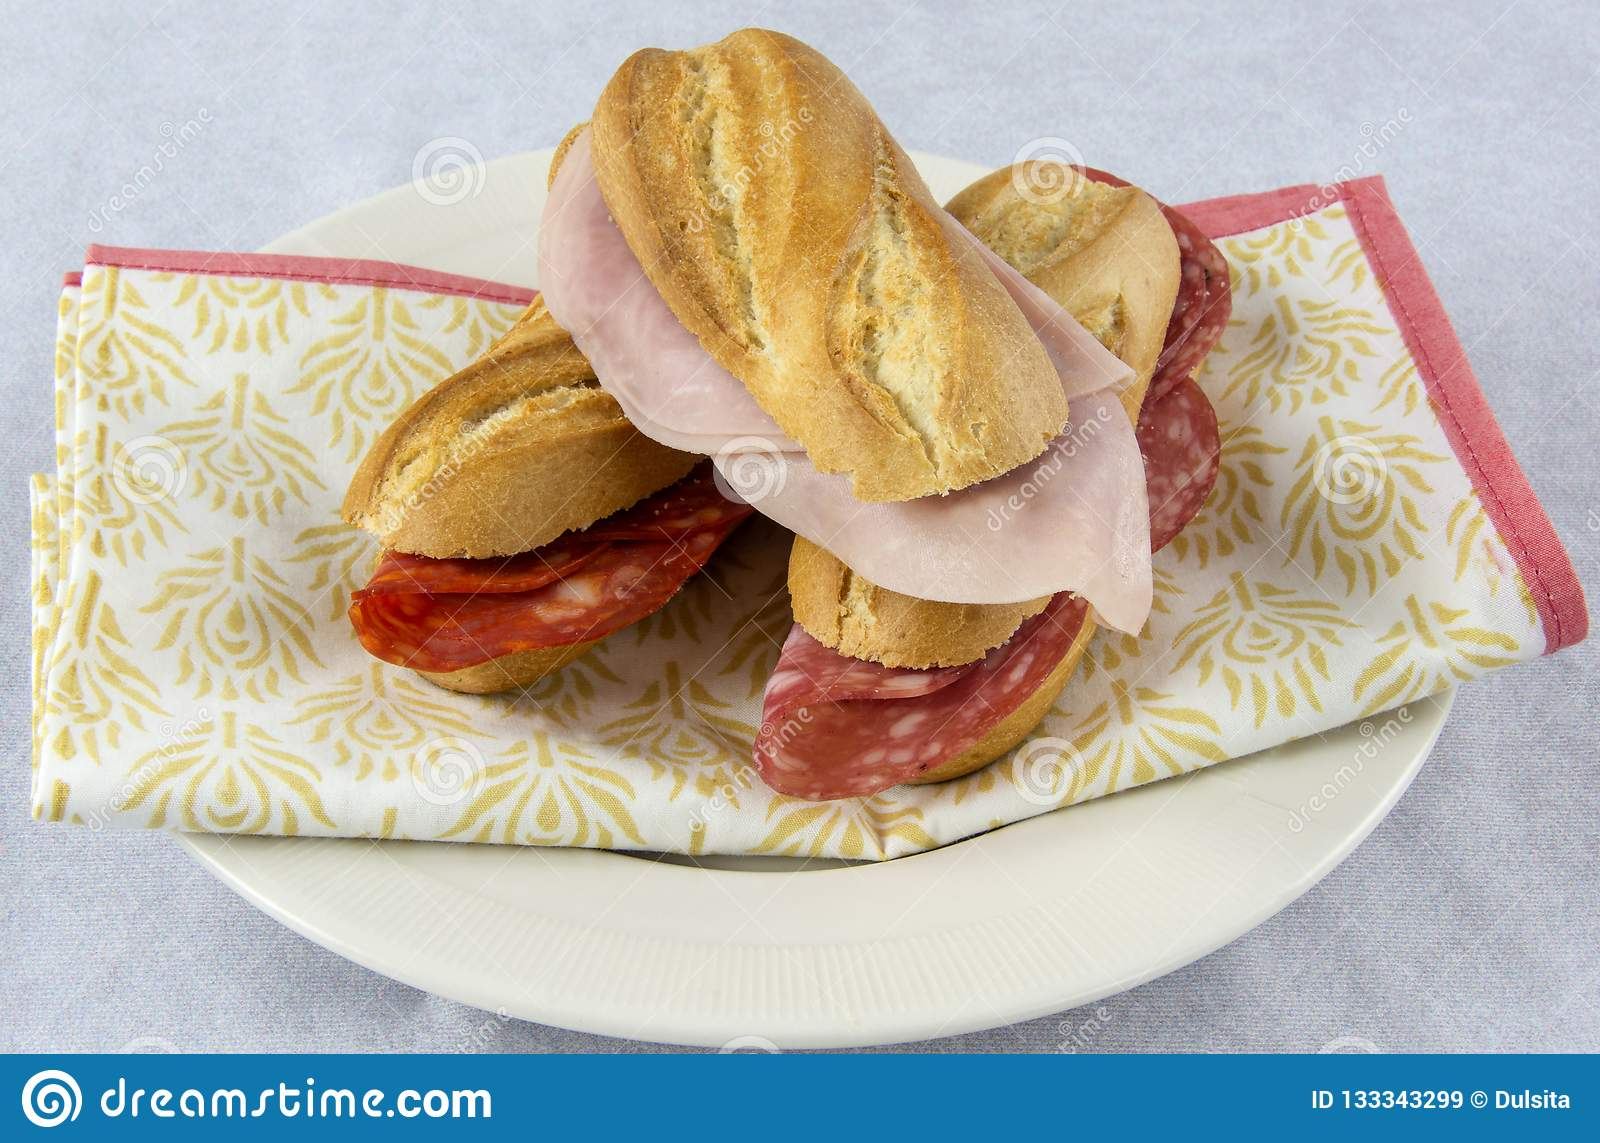 Assortment of sandwiches with sausage